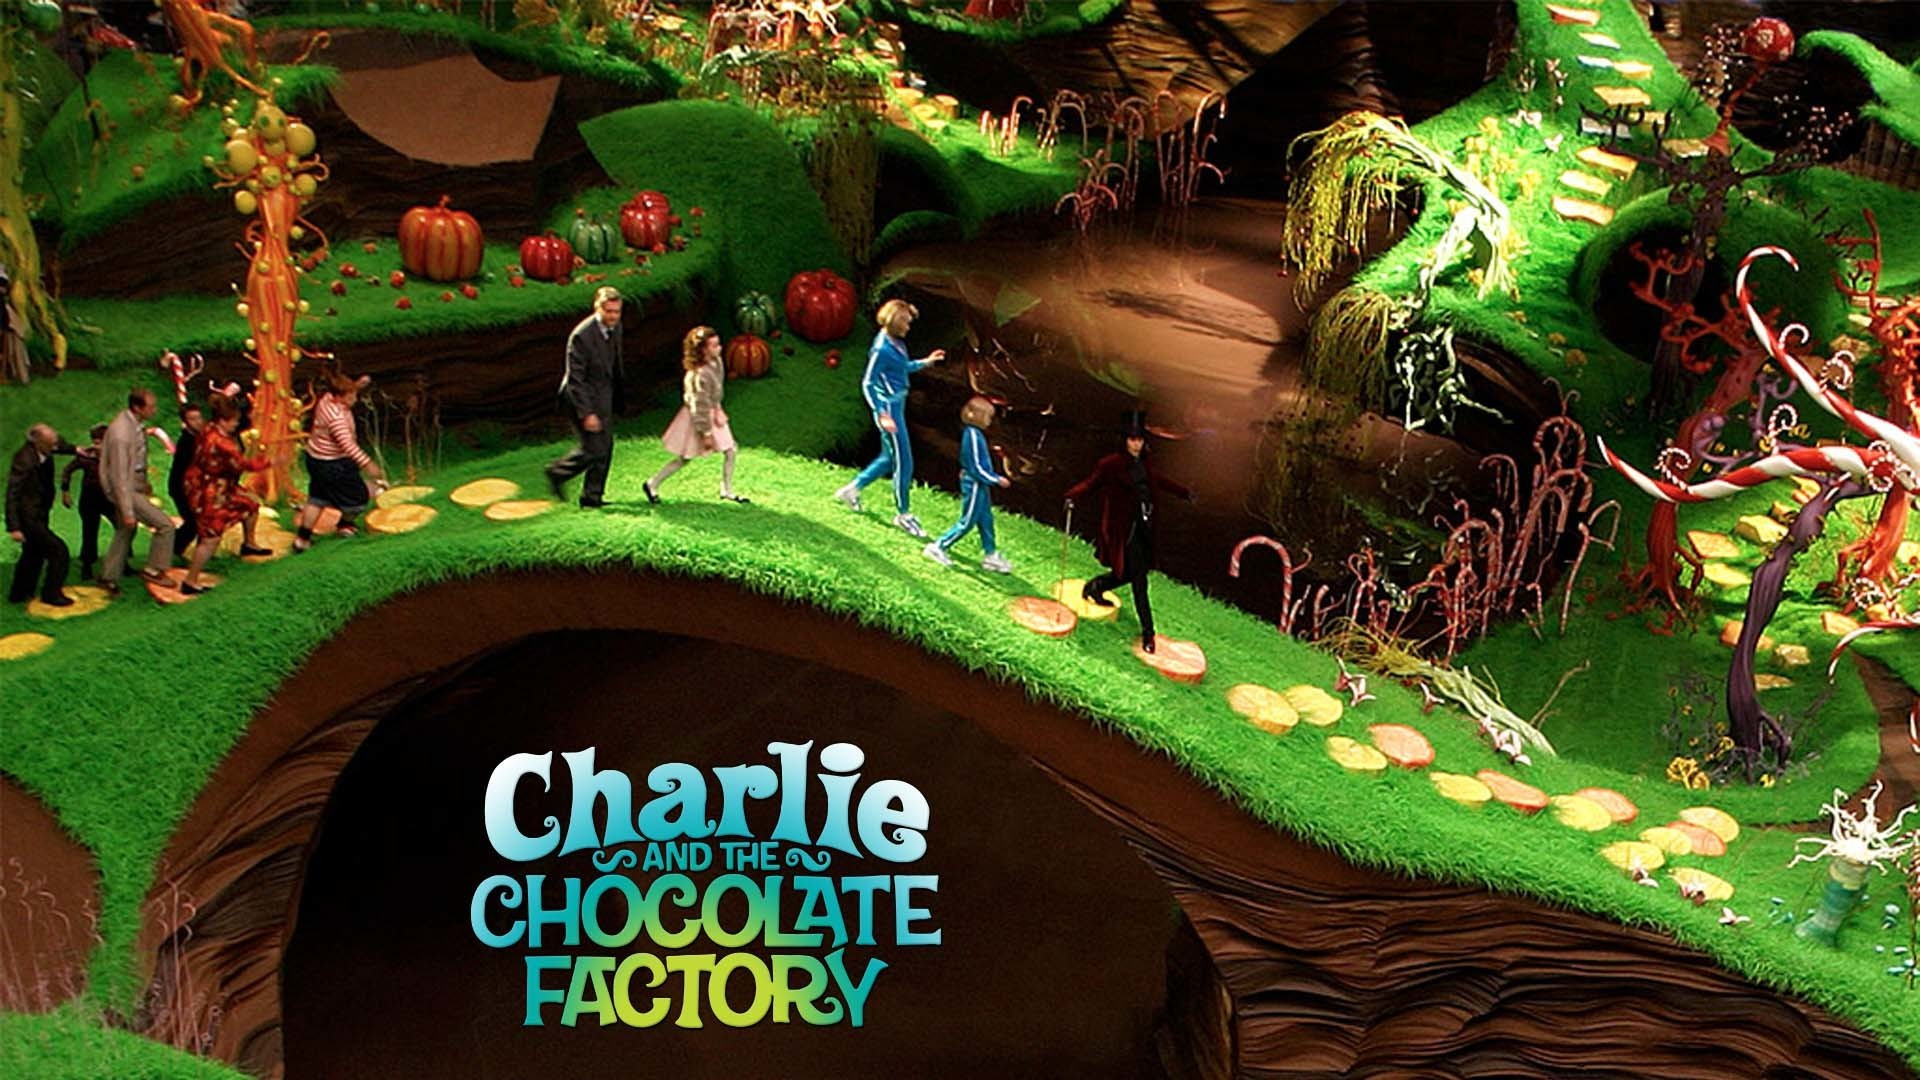 Charlie and the Chocolate Factory - Coffey Talk